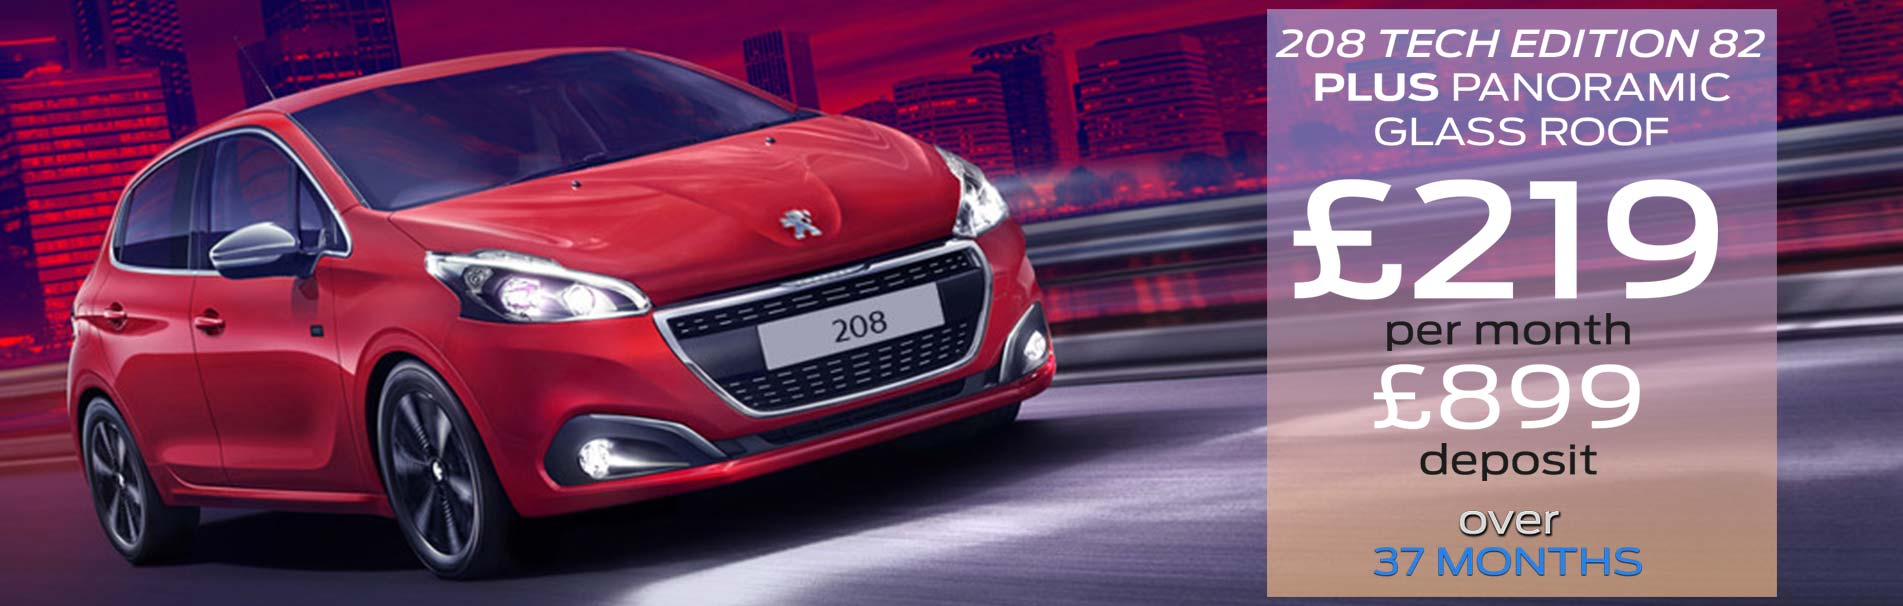 exclusive-3-year-deal-peugeot-208-tech-edition-cielo-glass-roof-sli